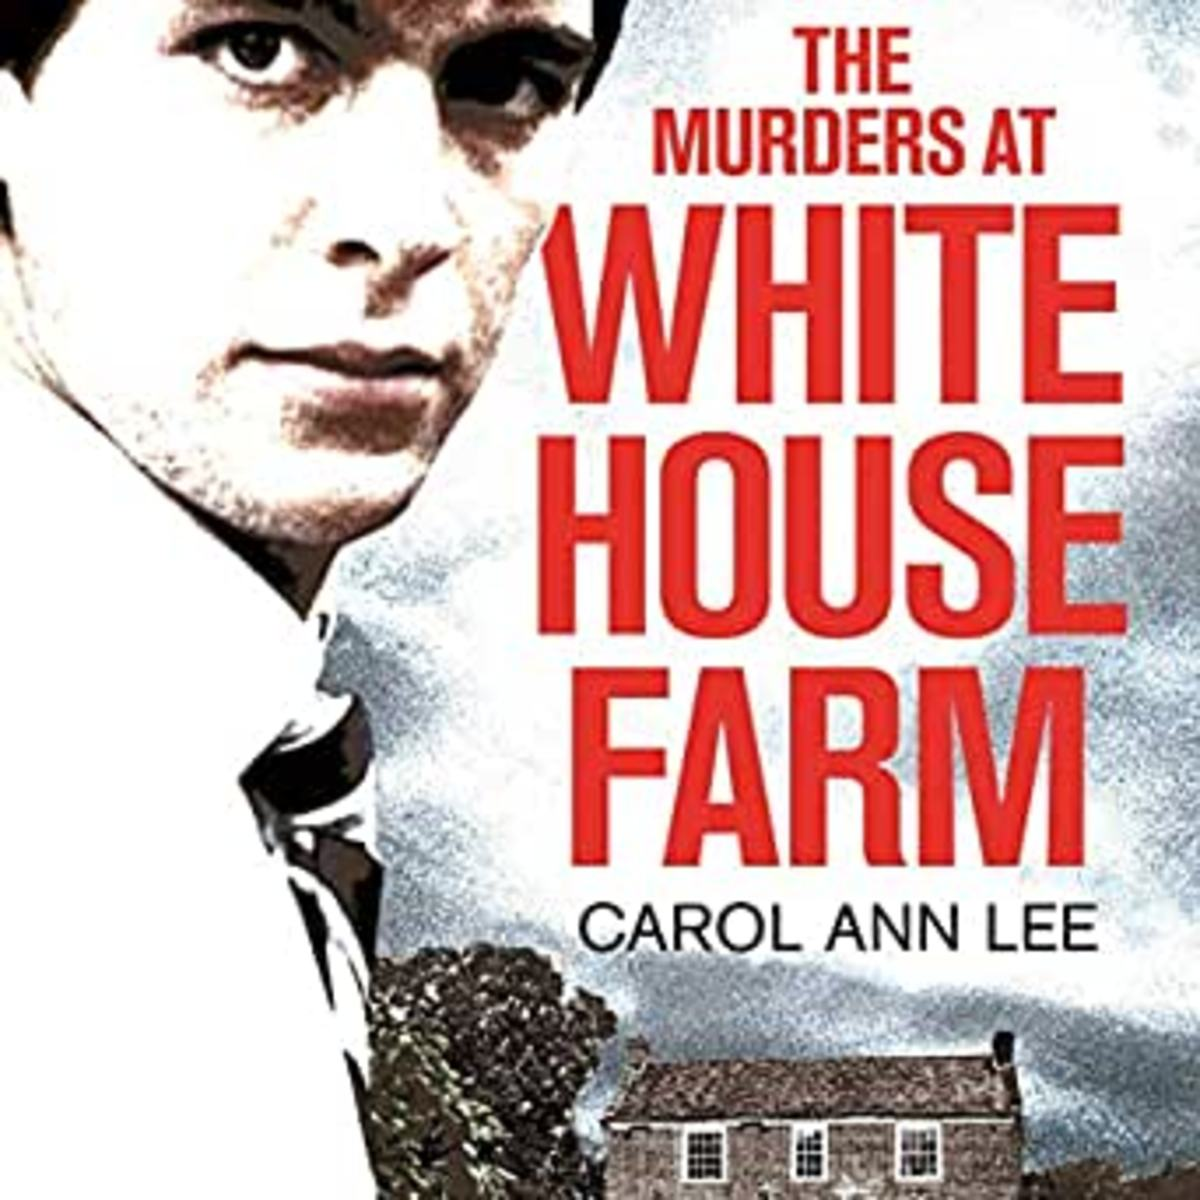 the-murders-at-white-house-farm-book-review